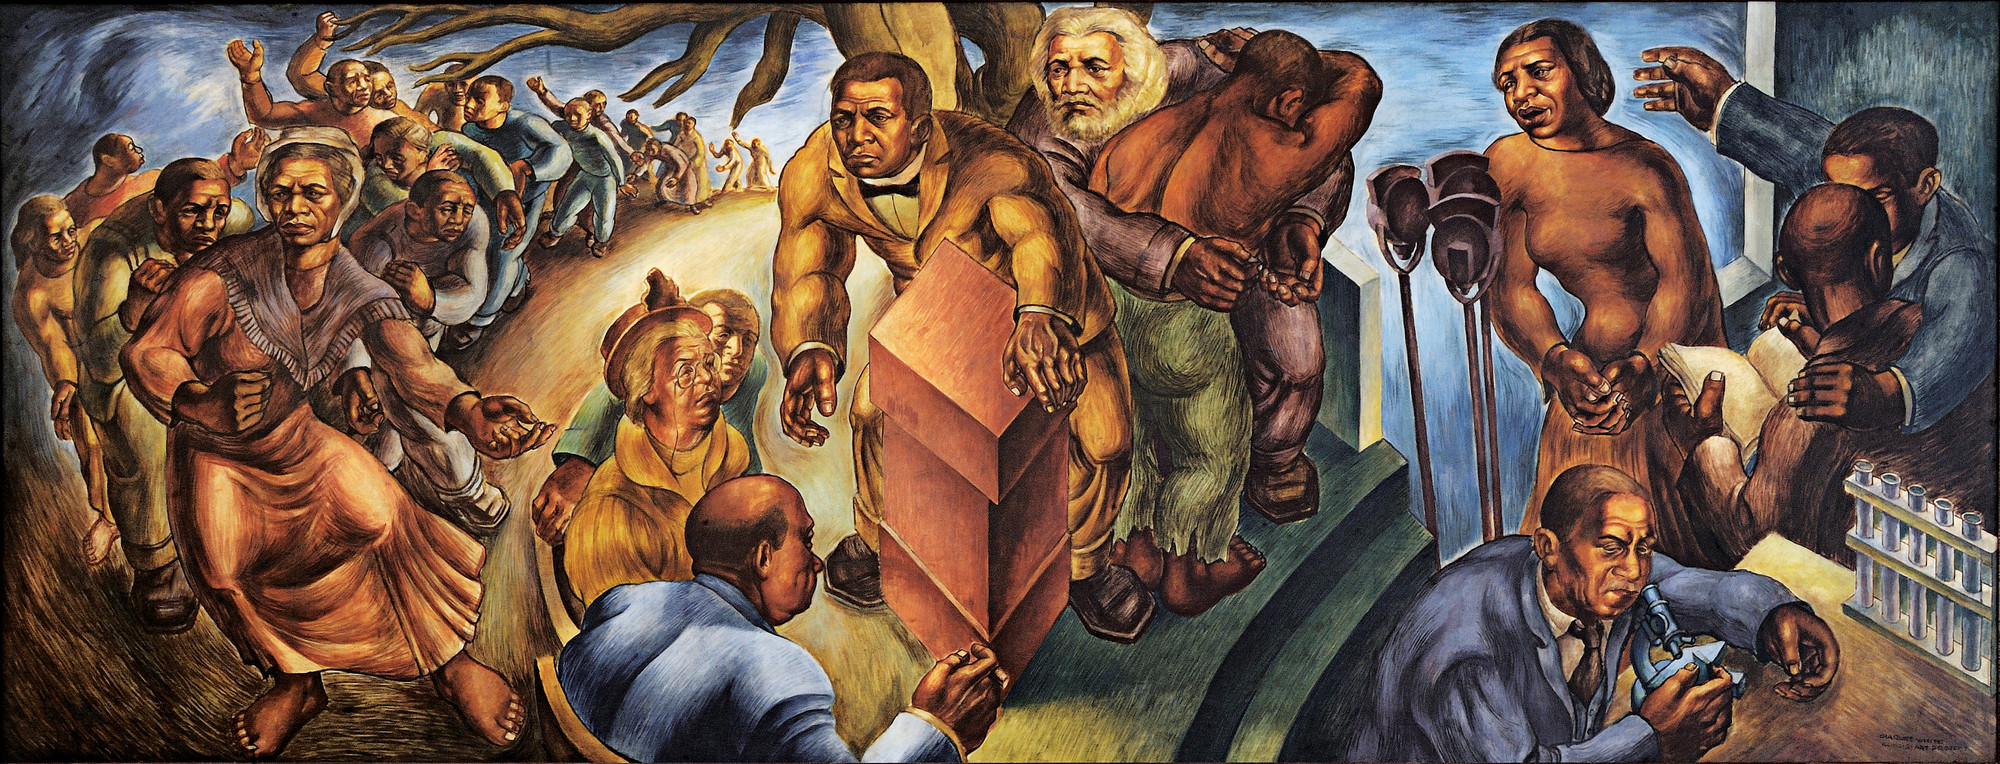 Charles White. Five Great American Negroes. 1939. The mural depicts from left to right: Sojourner Truth, Booker T. Washington, Frederick Douglass, Marian Anderson, and George Washington Carver.